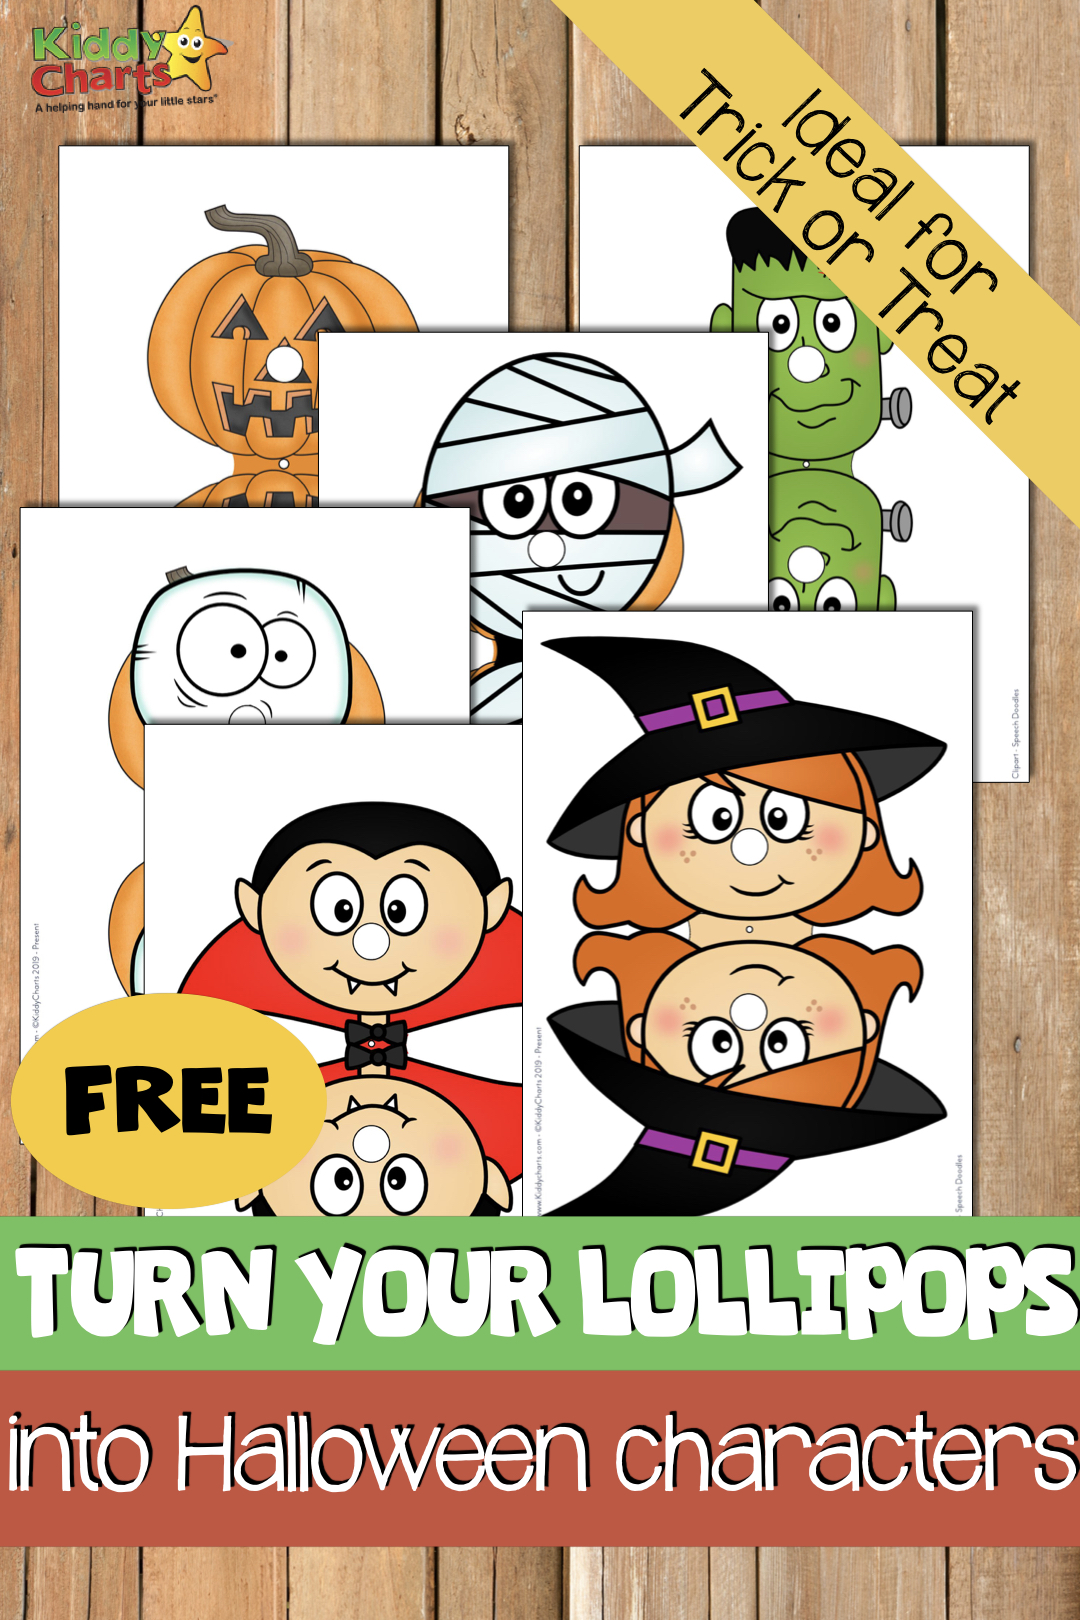 Chupachups Lollipop covers for trick or treating! We've done the Xmas ones, now it is Halloween's turn to get in on the act. Go check they out, they are super cool! #chupachups #lollipops #halloween #trickortreat #trickortreatideas #kids #partybags